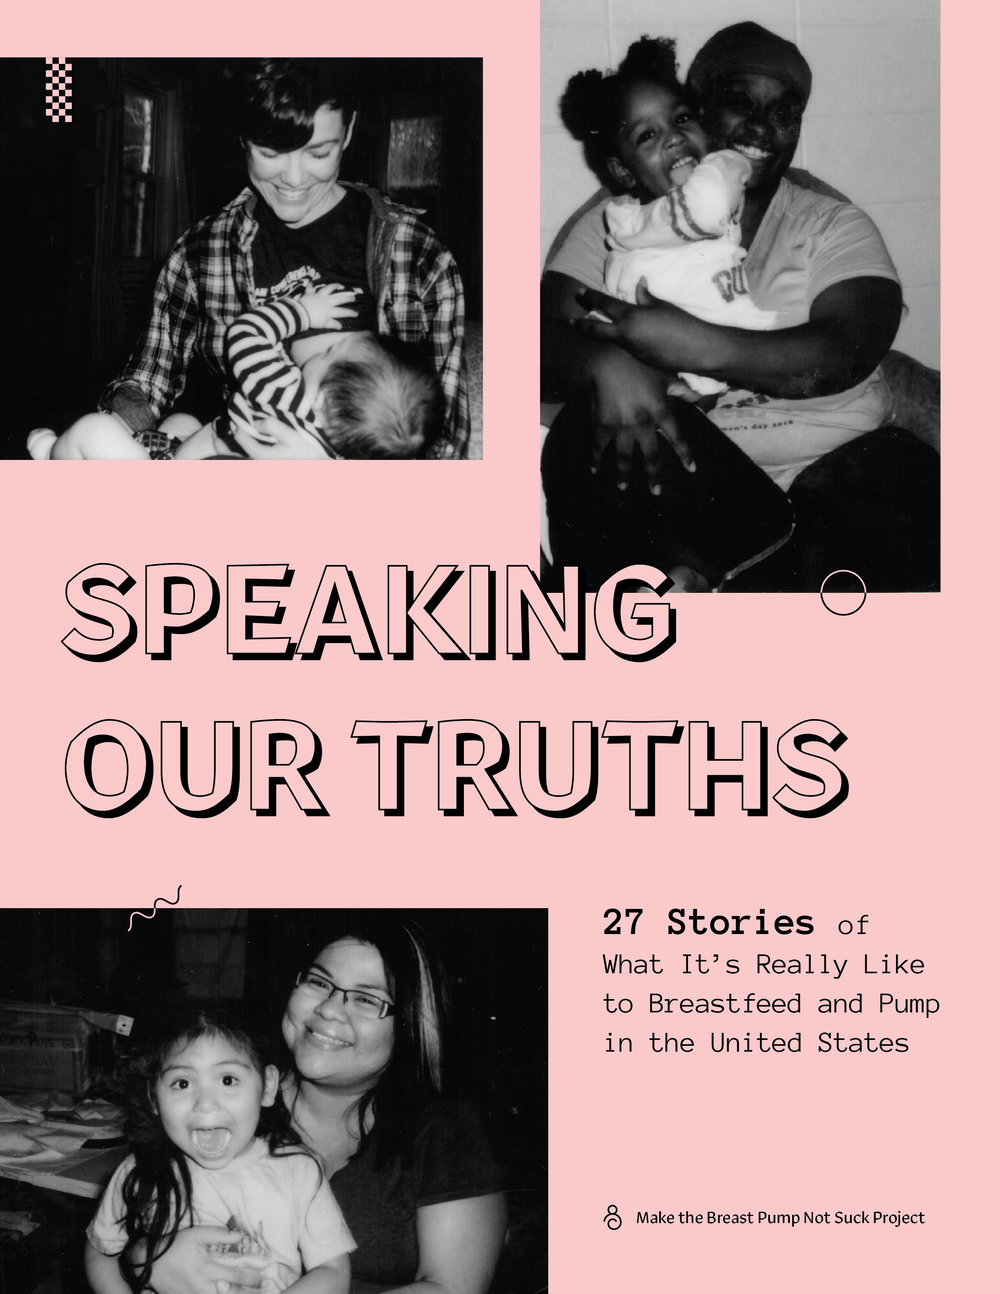 Speaking Our Truths  - 27 Stories of What It's Really Like to Breastfeed and Pump in the United States Download a PDF of the book